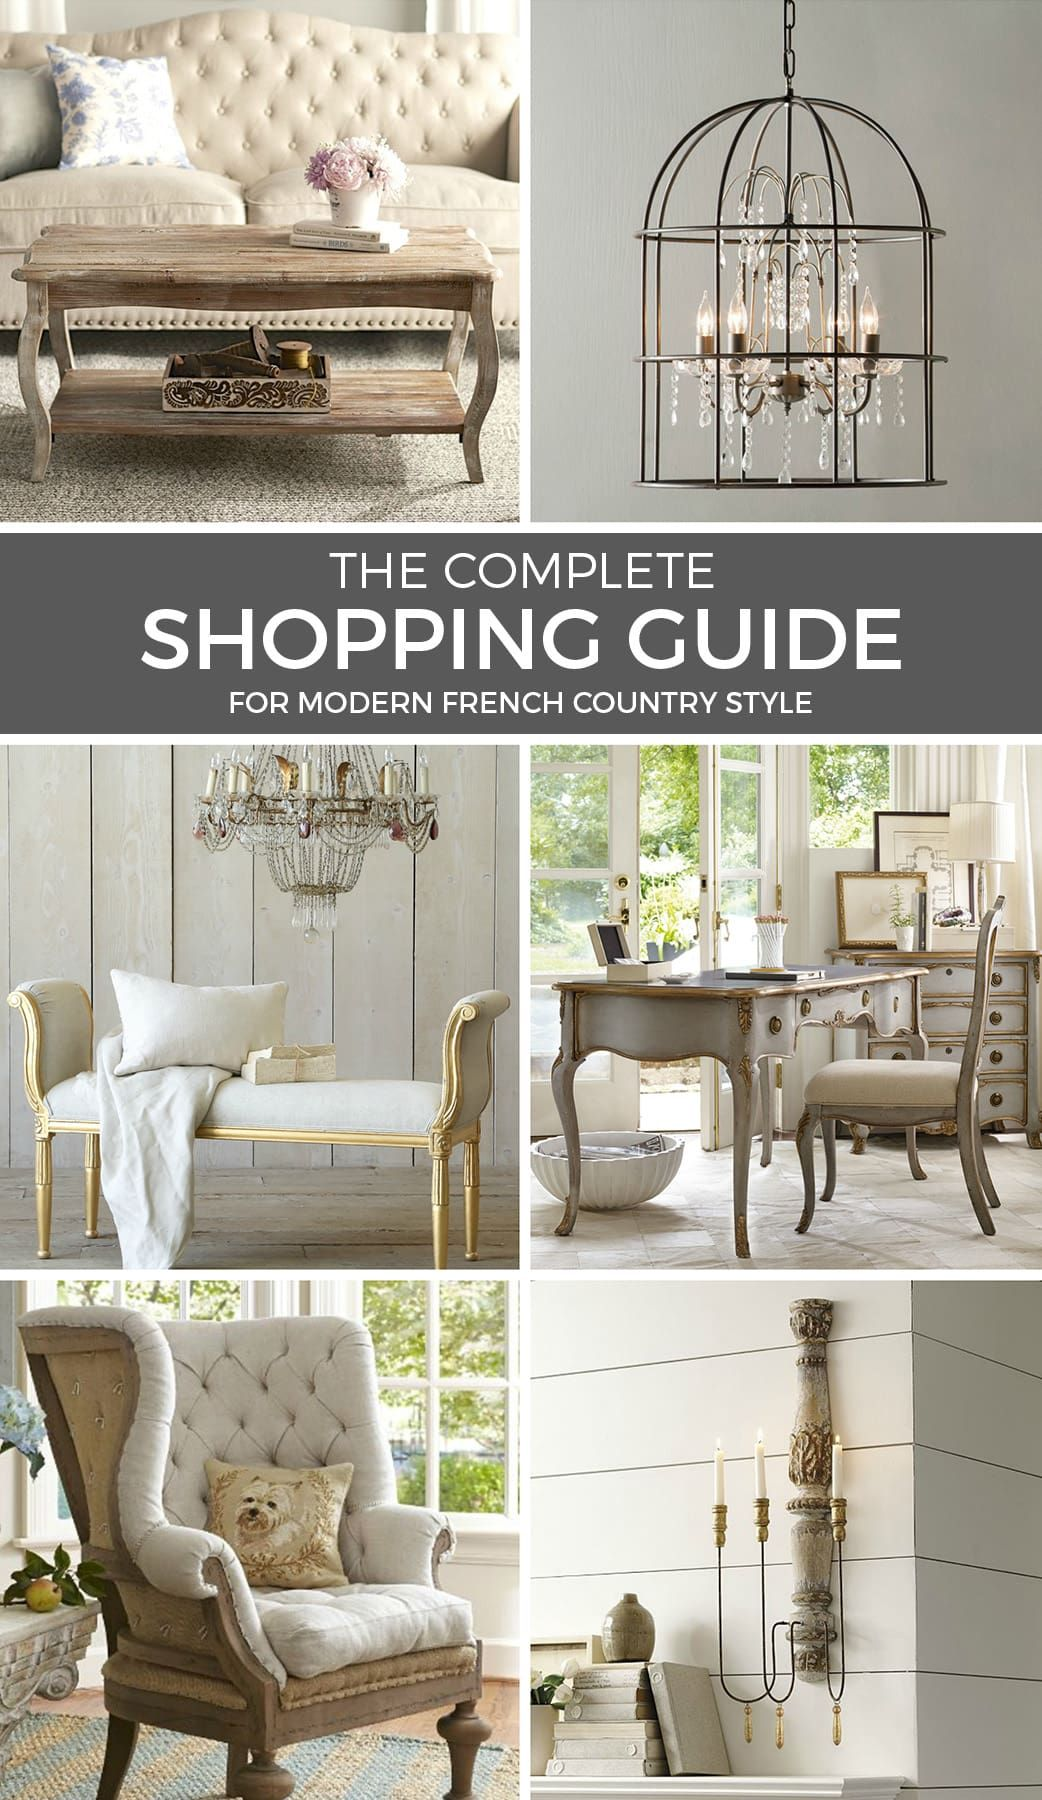 It doesn't have to cost a fortune to buy gorgeous French Country furniture! These affordable pieces will deliver modern French style within any budget. ----- #frenchcountrydecorating #frenchcountryshopping #frenchcountryfurniture #frenchcountry #frenchcountrydecor #frenchdecoratingideas #modernfrenchcountry #modernfrenchfarmhouse #elegantdecor #romanticdecor #cottagechic #farmhousestyle #vintagestyle #decoratingonabudget #frenchdecor